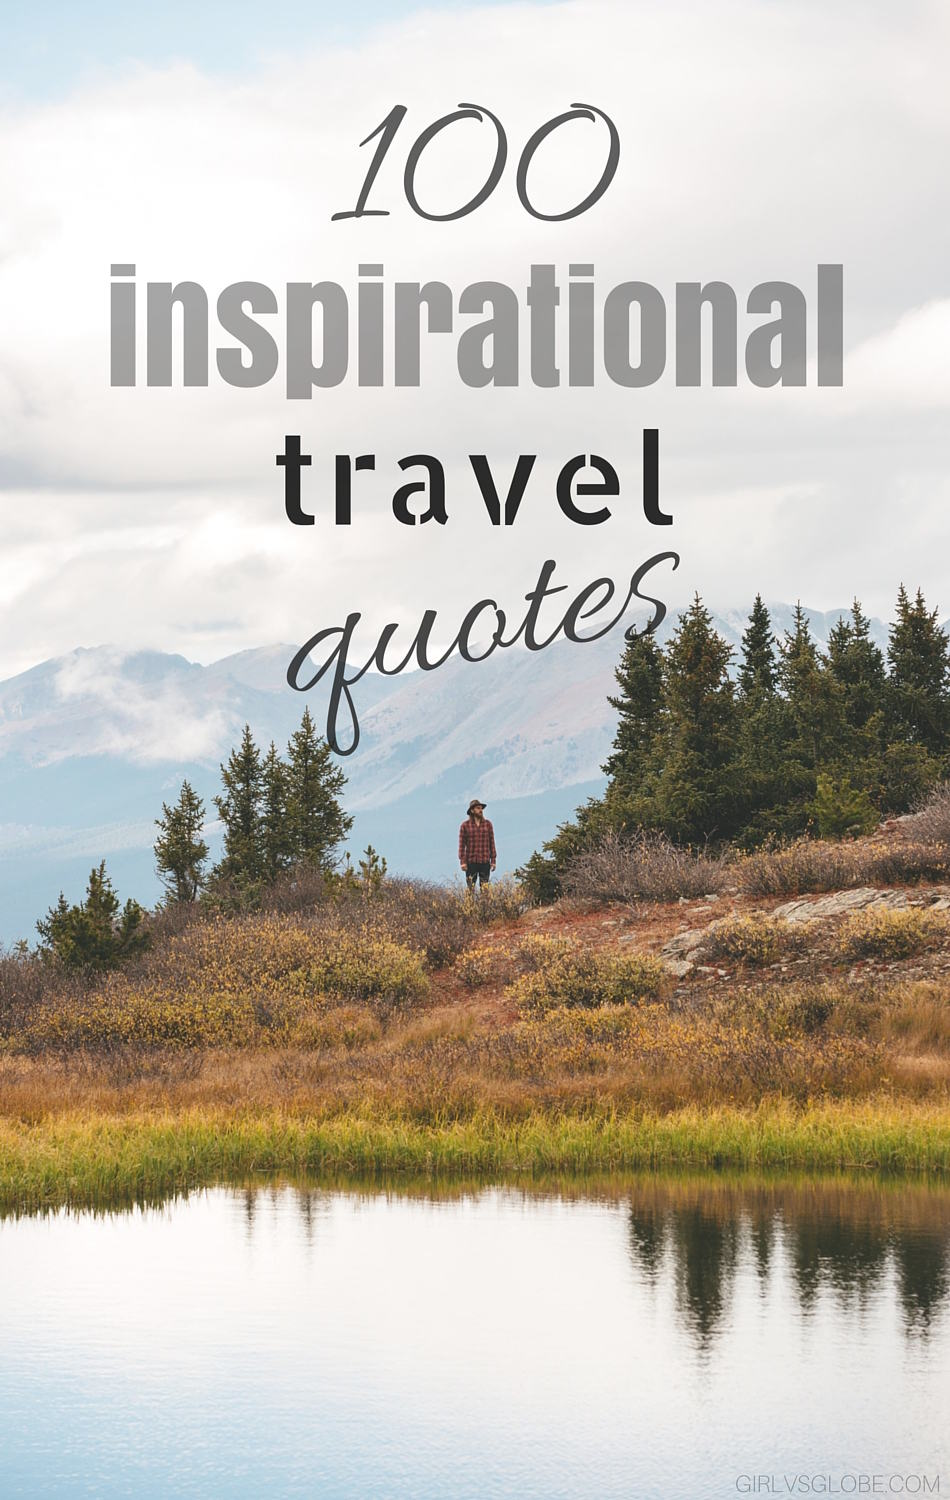 100 Inspirational Travel Quotes To Brighten Your Day